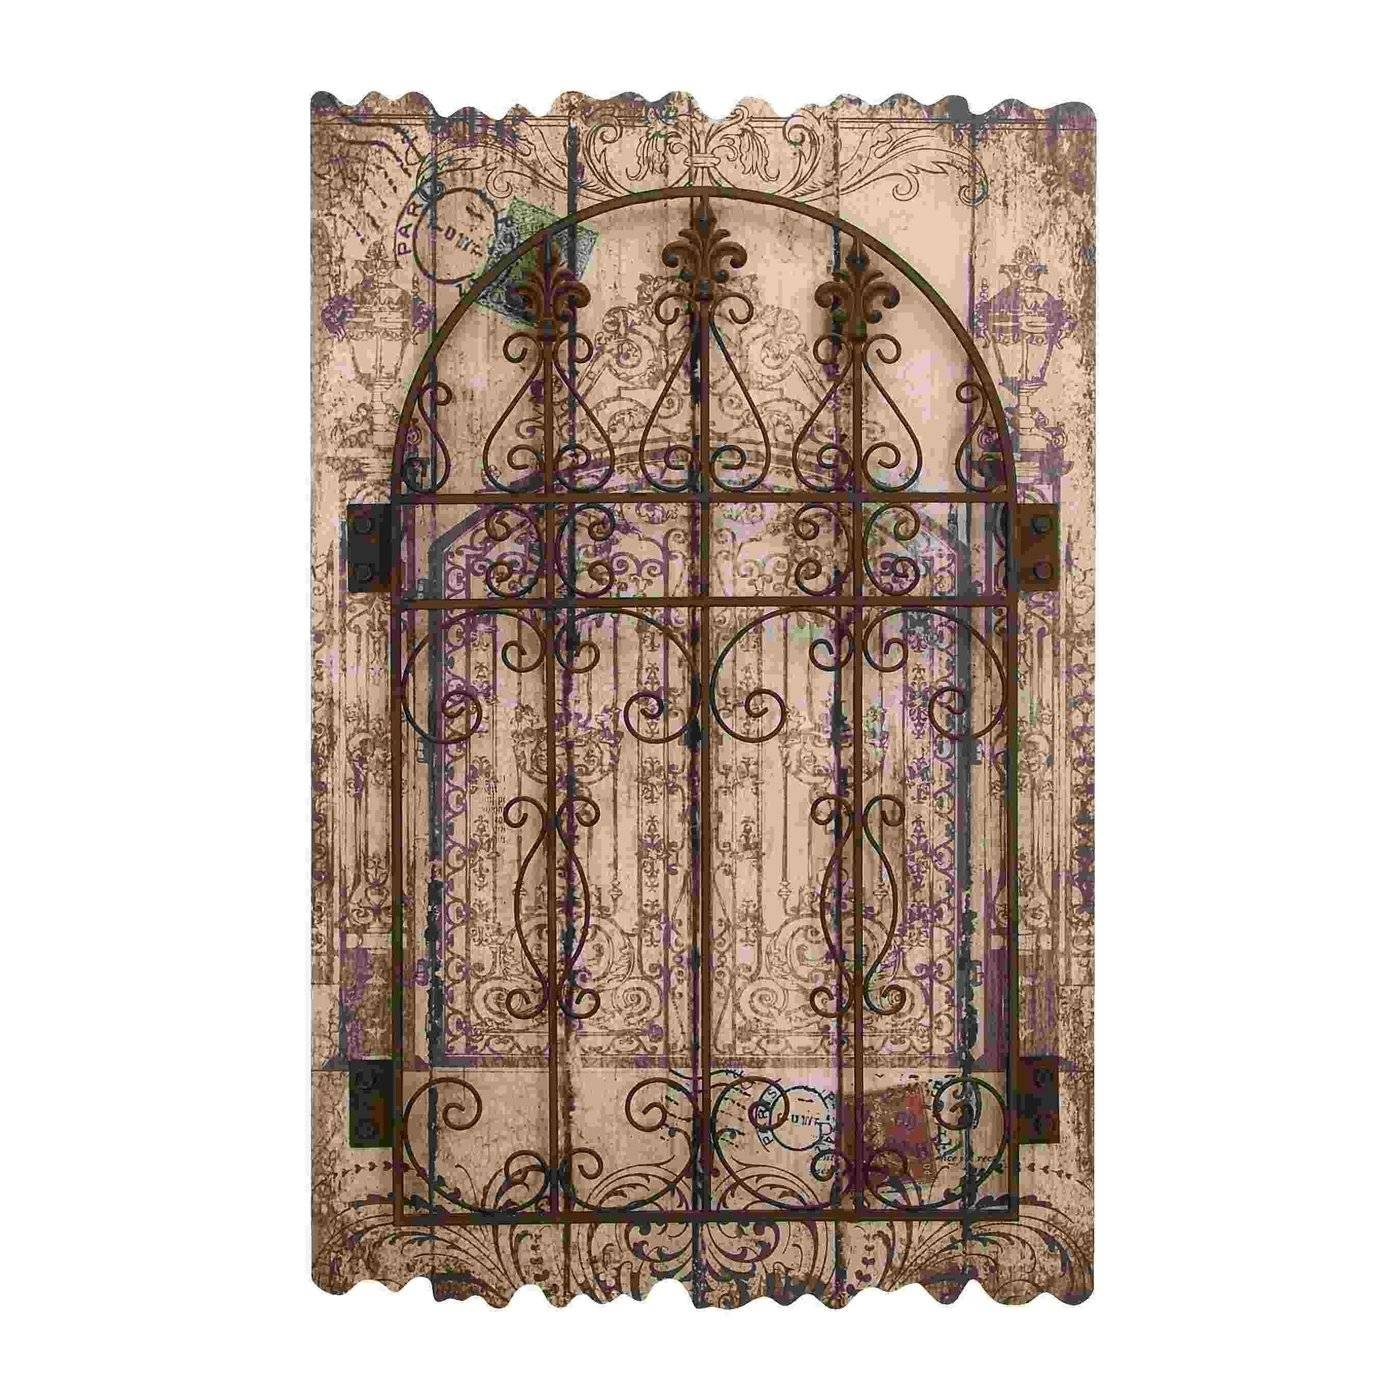 Wall Art Designs: Rustic Wood And Metal Wall Art Transitional In 2018 Wrought Iron Metal Wall Art (View 15 of 20)